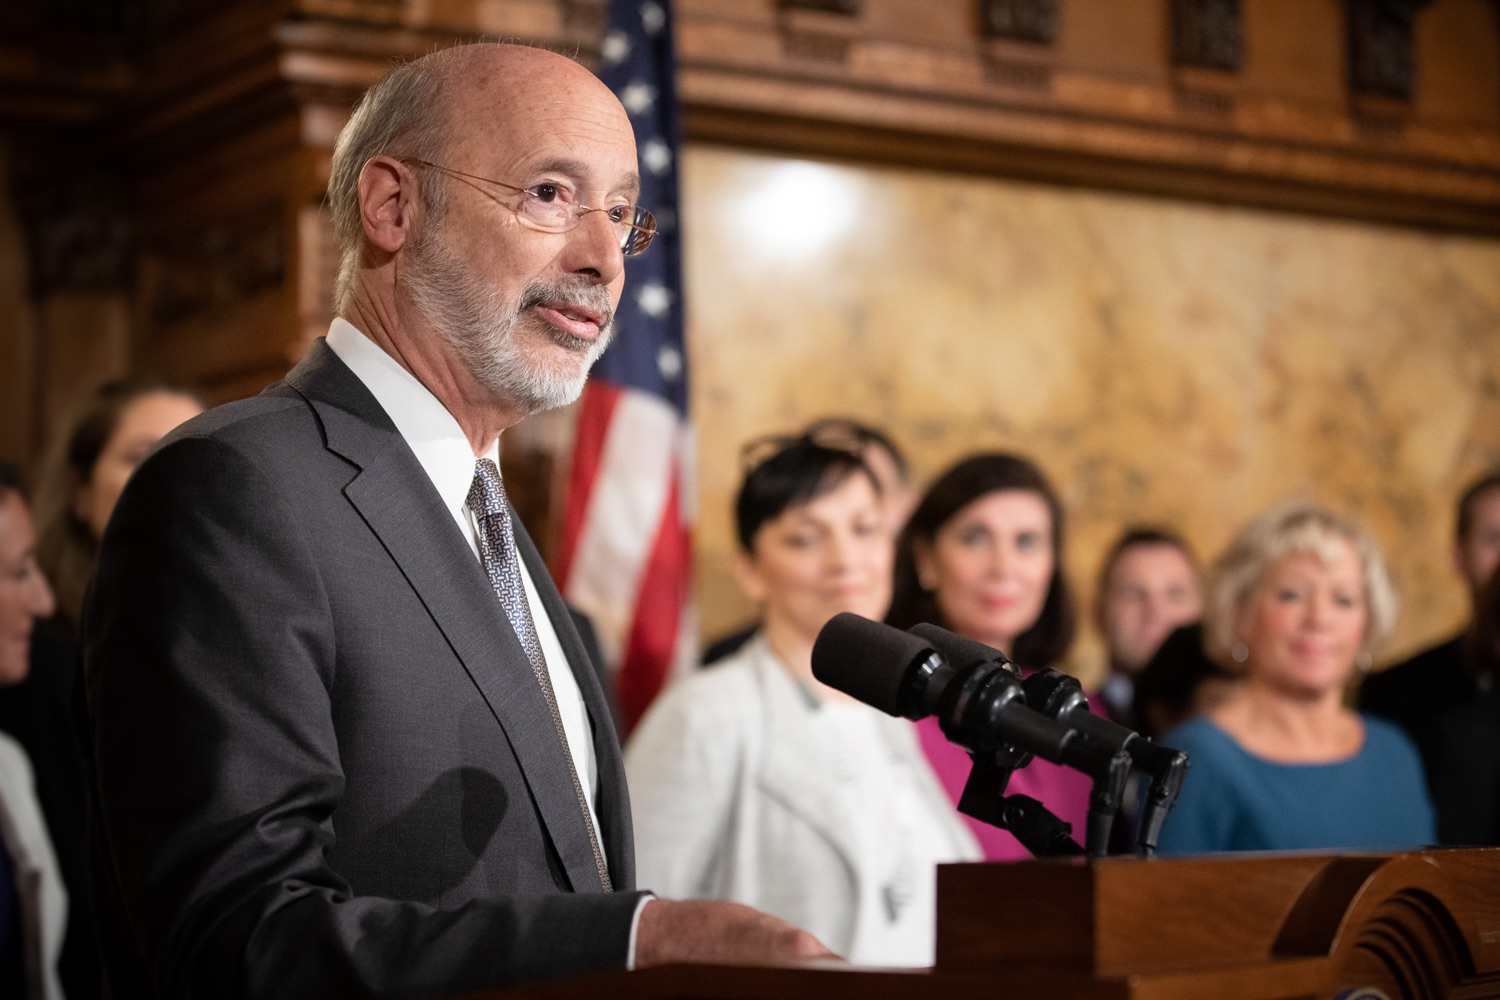 "<a href=""https://filesource.wostreaming.net/commonwealthofpa/photo/17554_gov_voter_reform_bill_dz_005.jpg"" target=""_blank"">⇣ Download Photo<br></a>Harrisburg, PA  Governor Tom Wolf speaks at the Election Reform Bill signing. Governor Wolf made voting more convenient and secure by signing Act 77 of 2019, the most significant improvement to Pennsylvanias elections in more than 80 years. The bipartisan compromise legislation takes effect for the April 2020 primary election and makes Pennsylvania a national leader with voter-friendly election reforms."